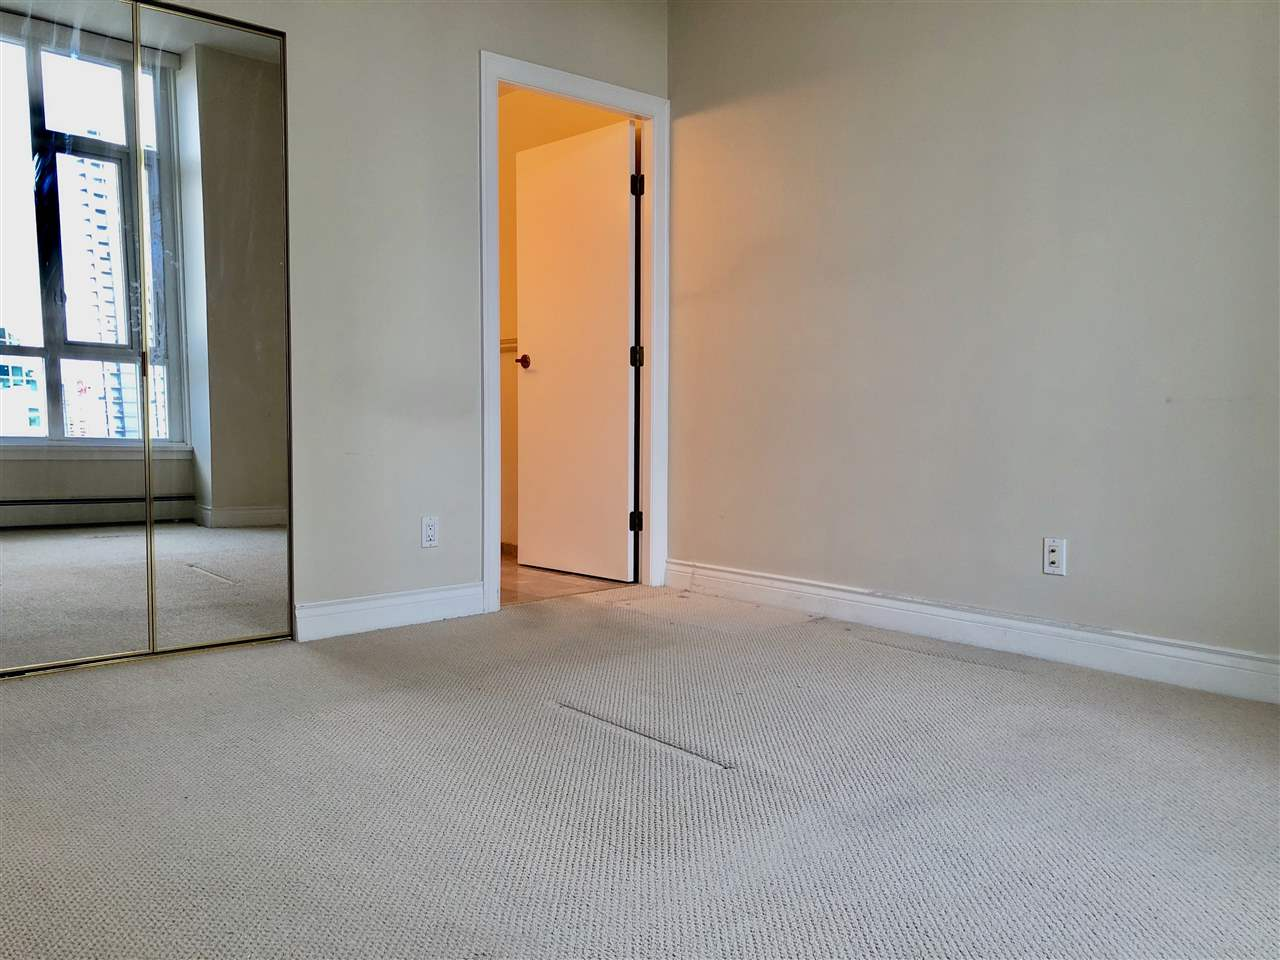 3001 388 DRAKE STREET - Yaletown Apartment/Condo for sale, 3 Bedrooms (R2422644) - #16